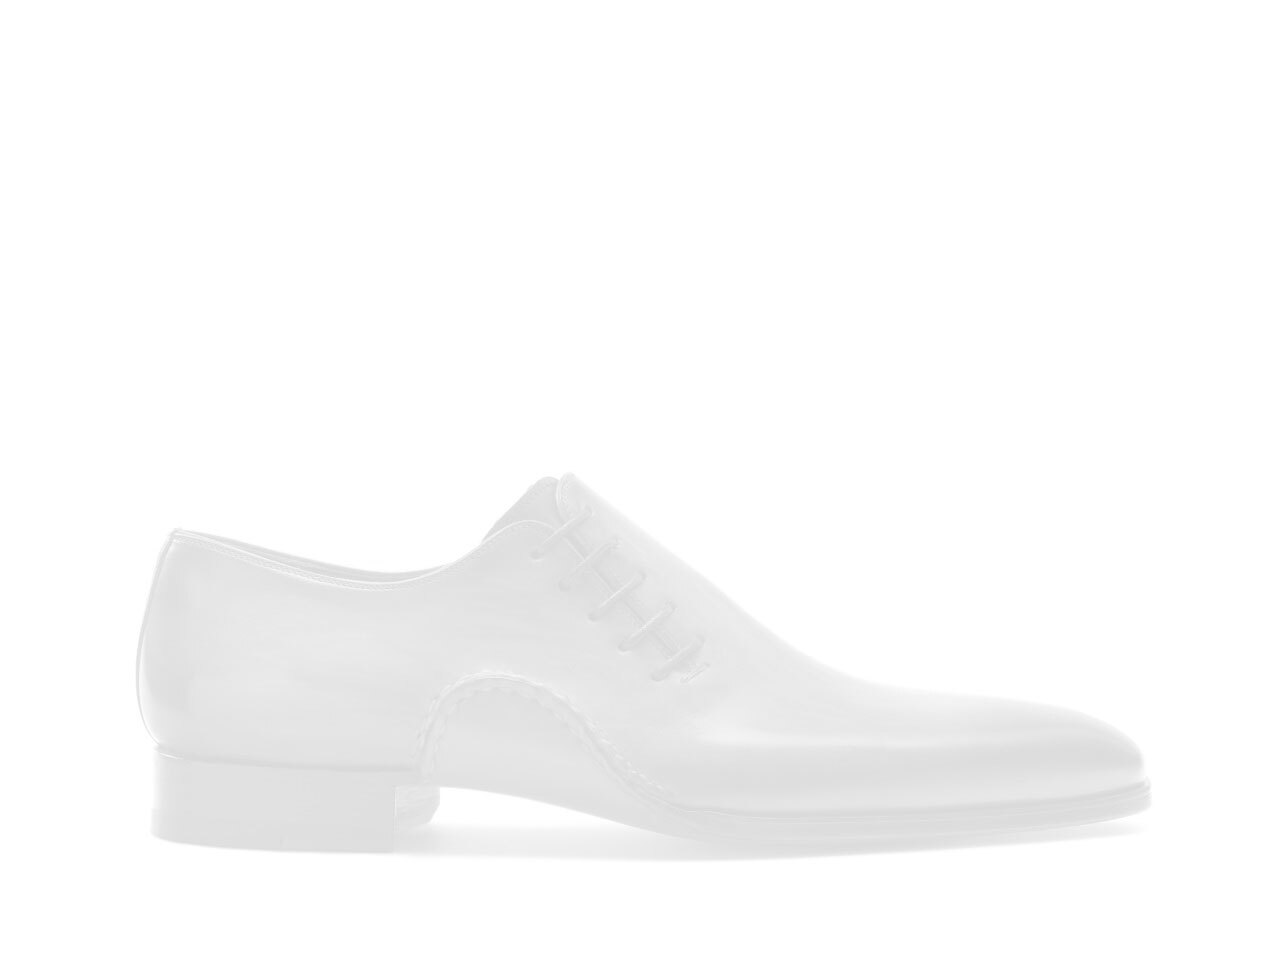 Side view of the Magnanni Selaya Grey Men's Sneakers